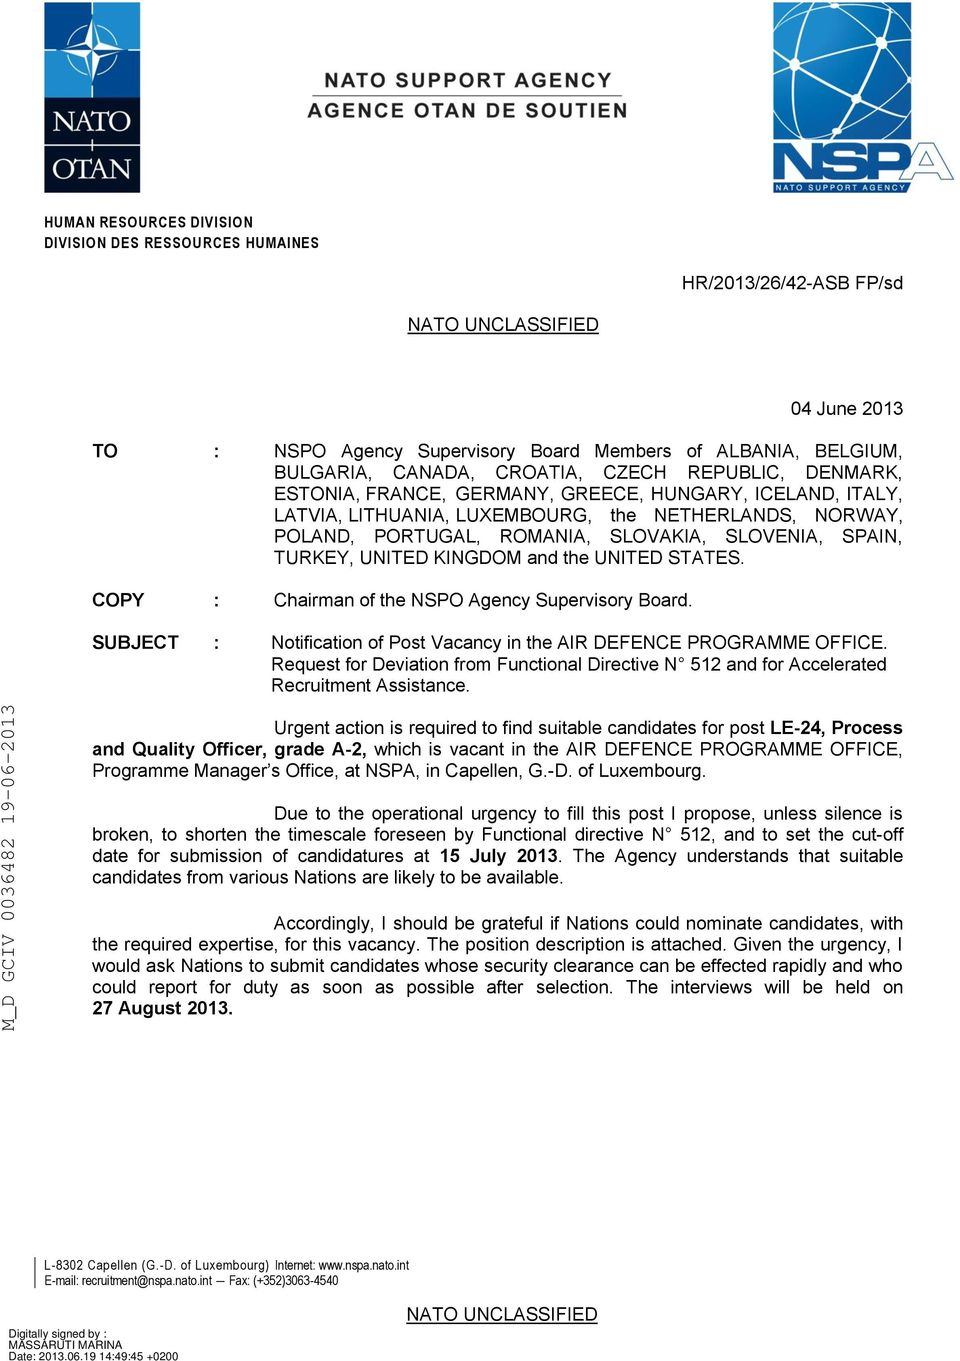 SPAIN, TURKEY, UNITED KINGDOM and the UNITED STATES. COPY : Chairman of the NSPO Agency Supervisory Board. SUBJECT : Notification of Post Vacancy in the AIR DEFENCE PROGRAMME OFFICE.